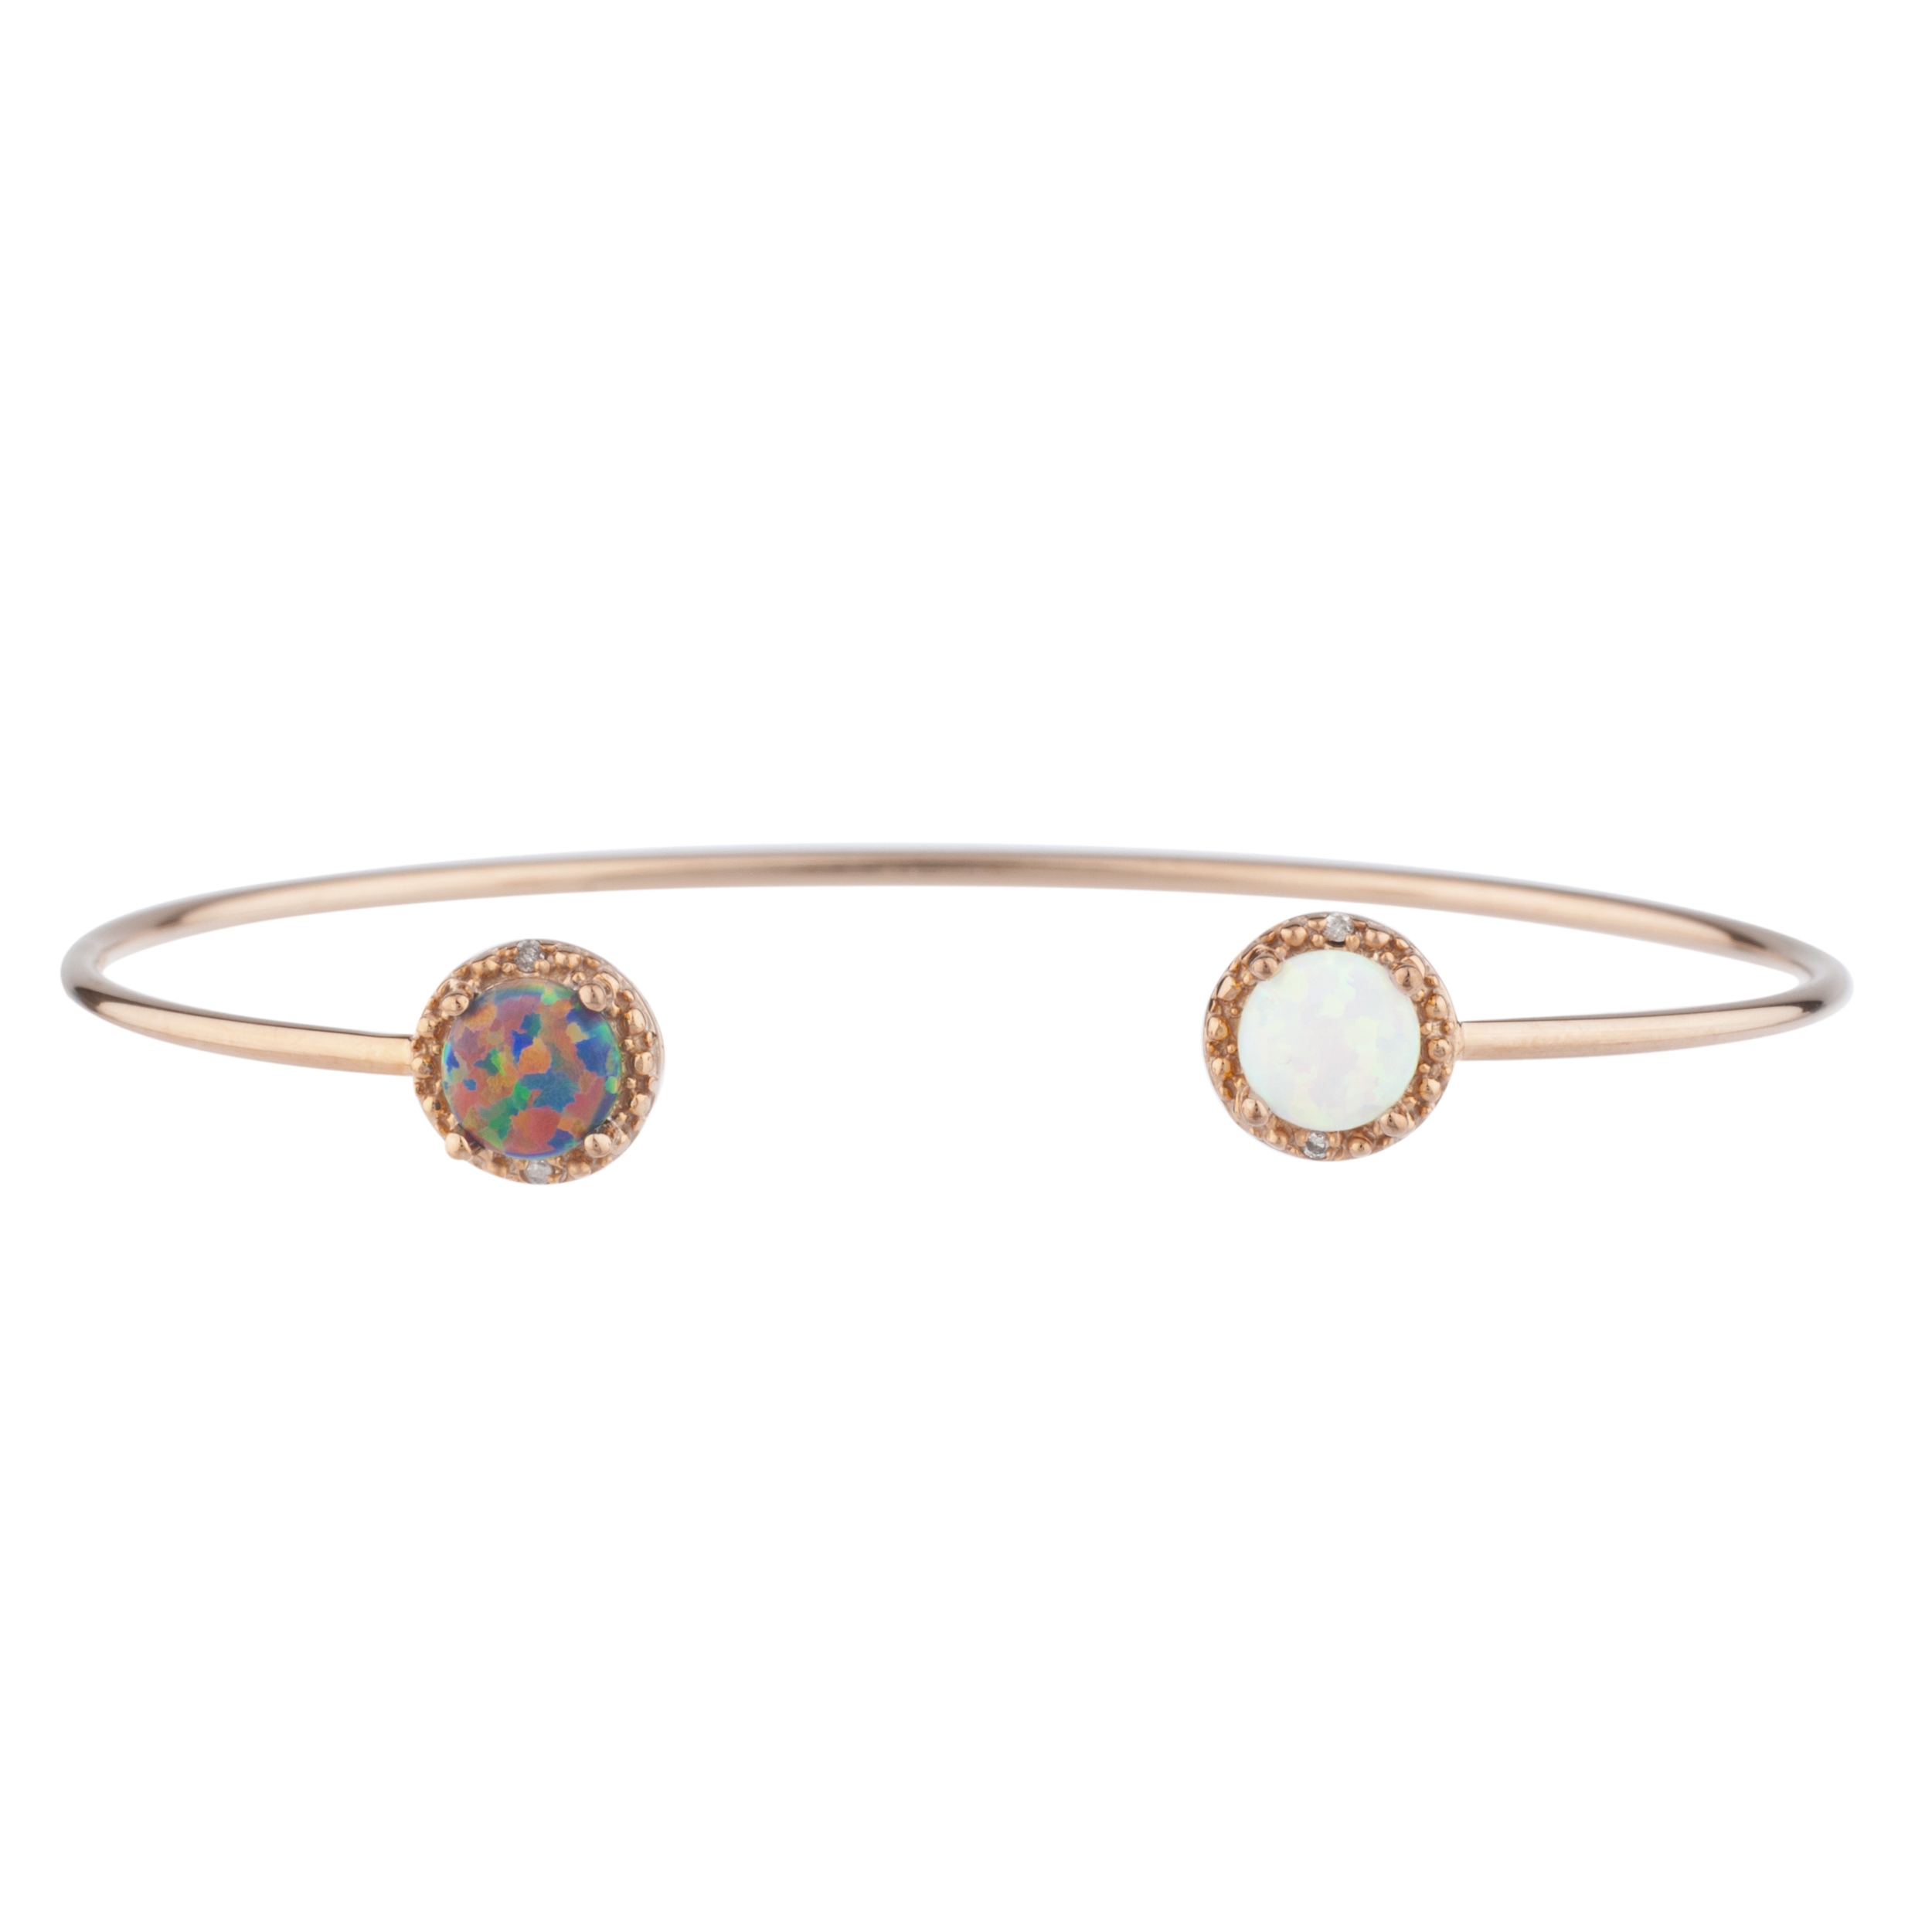 Black Opal & White Opal Diamond Bangle Round Bracelet 14Kt Rose Gold Plated Over .925 Sterling Silver by Elizabeth Jewelry Inc